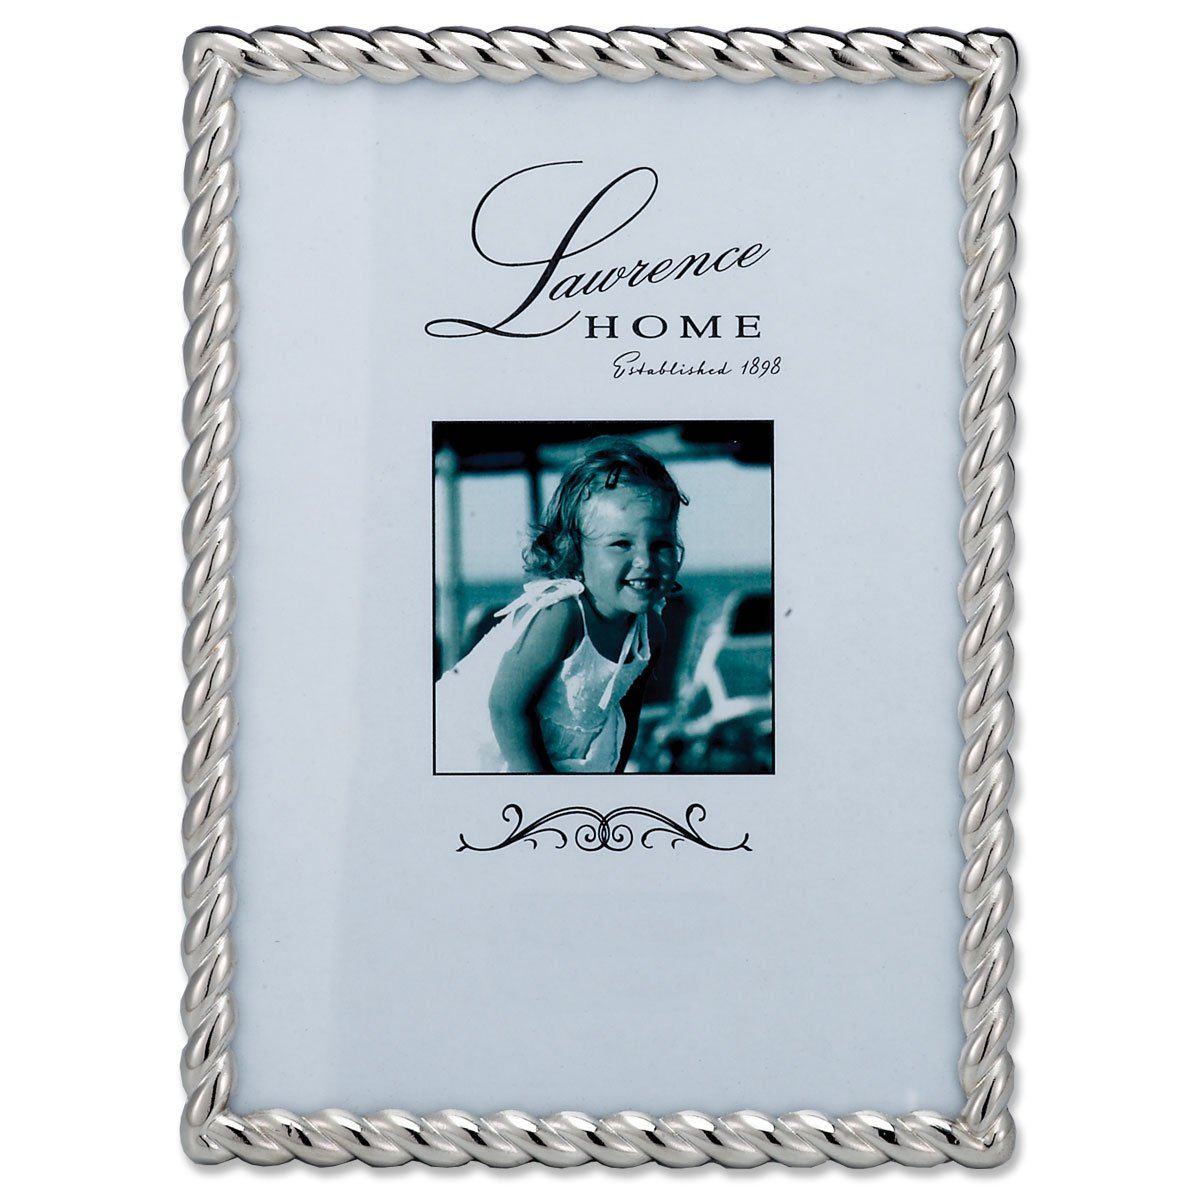 Lawrence frames 710057 silver metal rope picture frame 5 by 7 inch description size5 x 7 jeuxipadfo Image collections